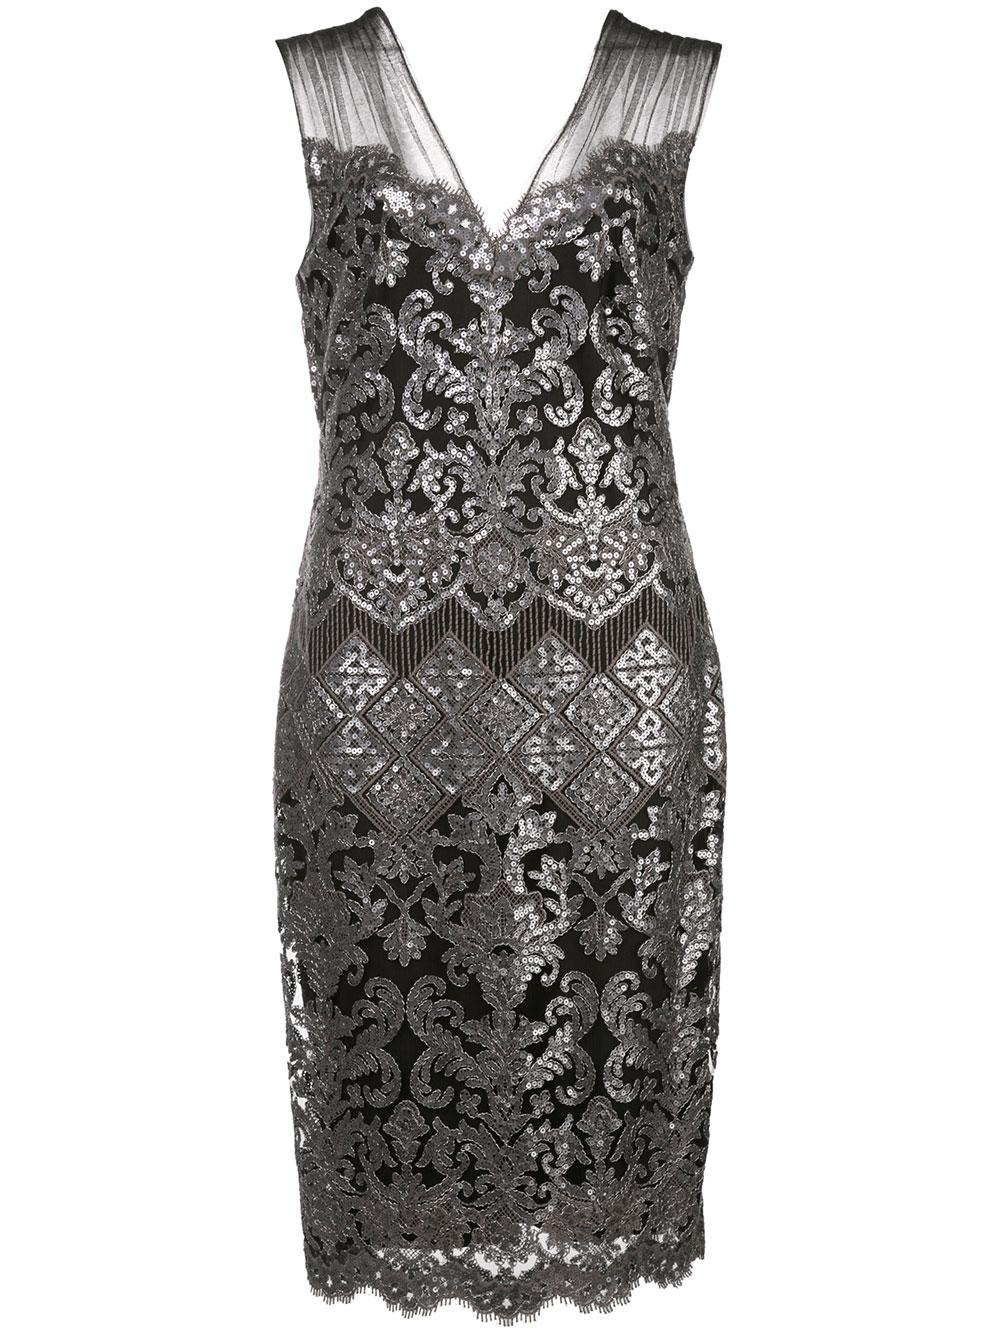 Sleeveless Lace Embroidered Cocktail Dress